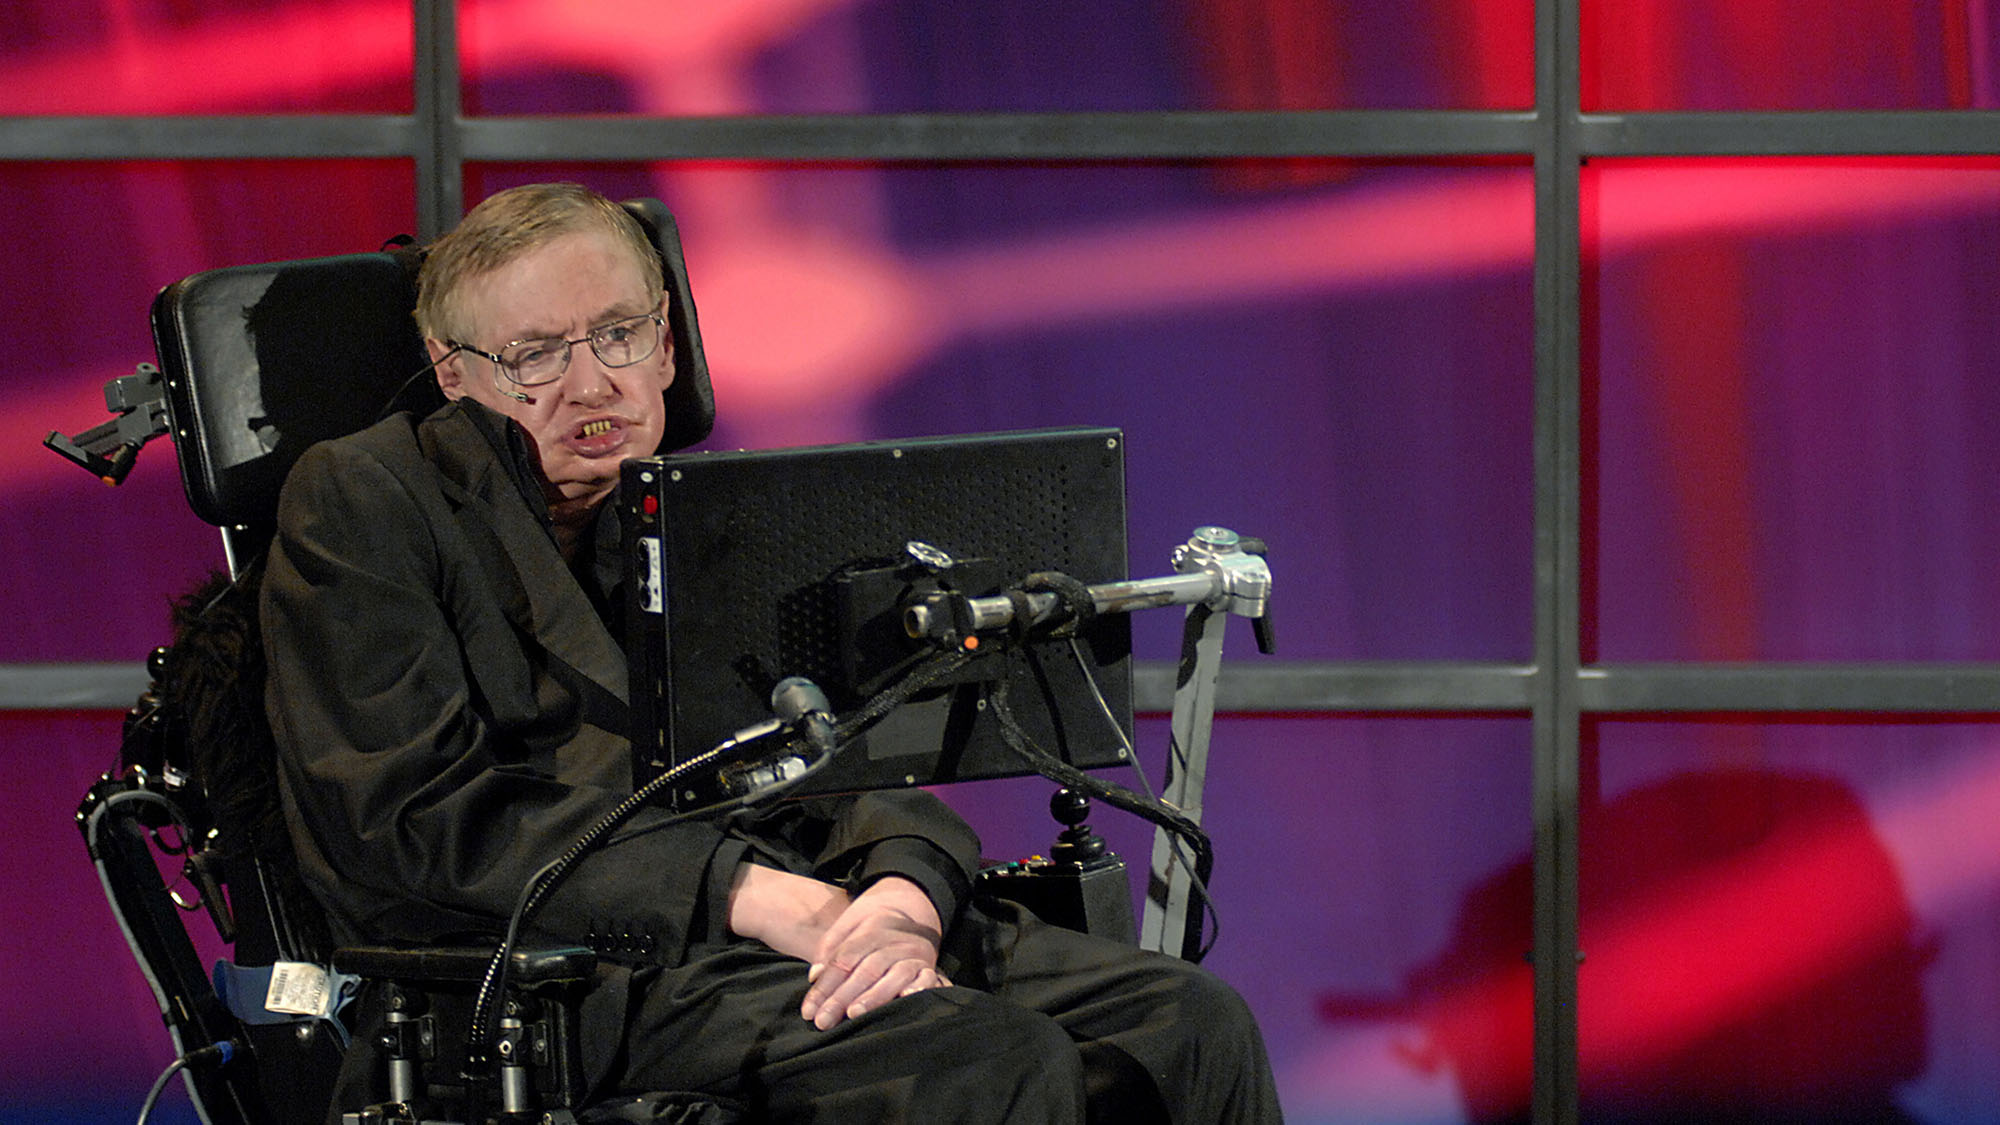 Theoretical physicist Stephen Hawking speaks at his official welcoming ceremony at Perimeter Institute For Theoretical Physics in Kitchener June 20, 2010. Hawking will be conducting research at the facility.